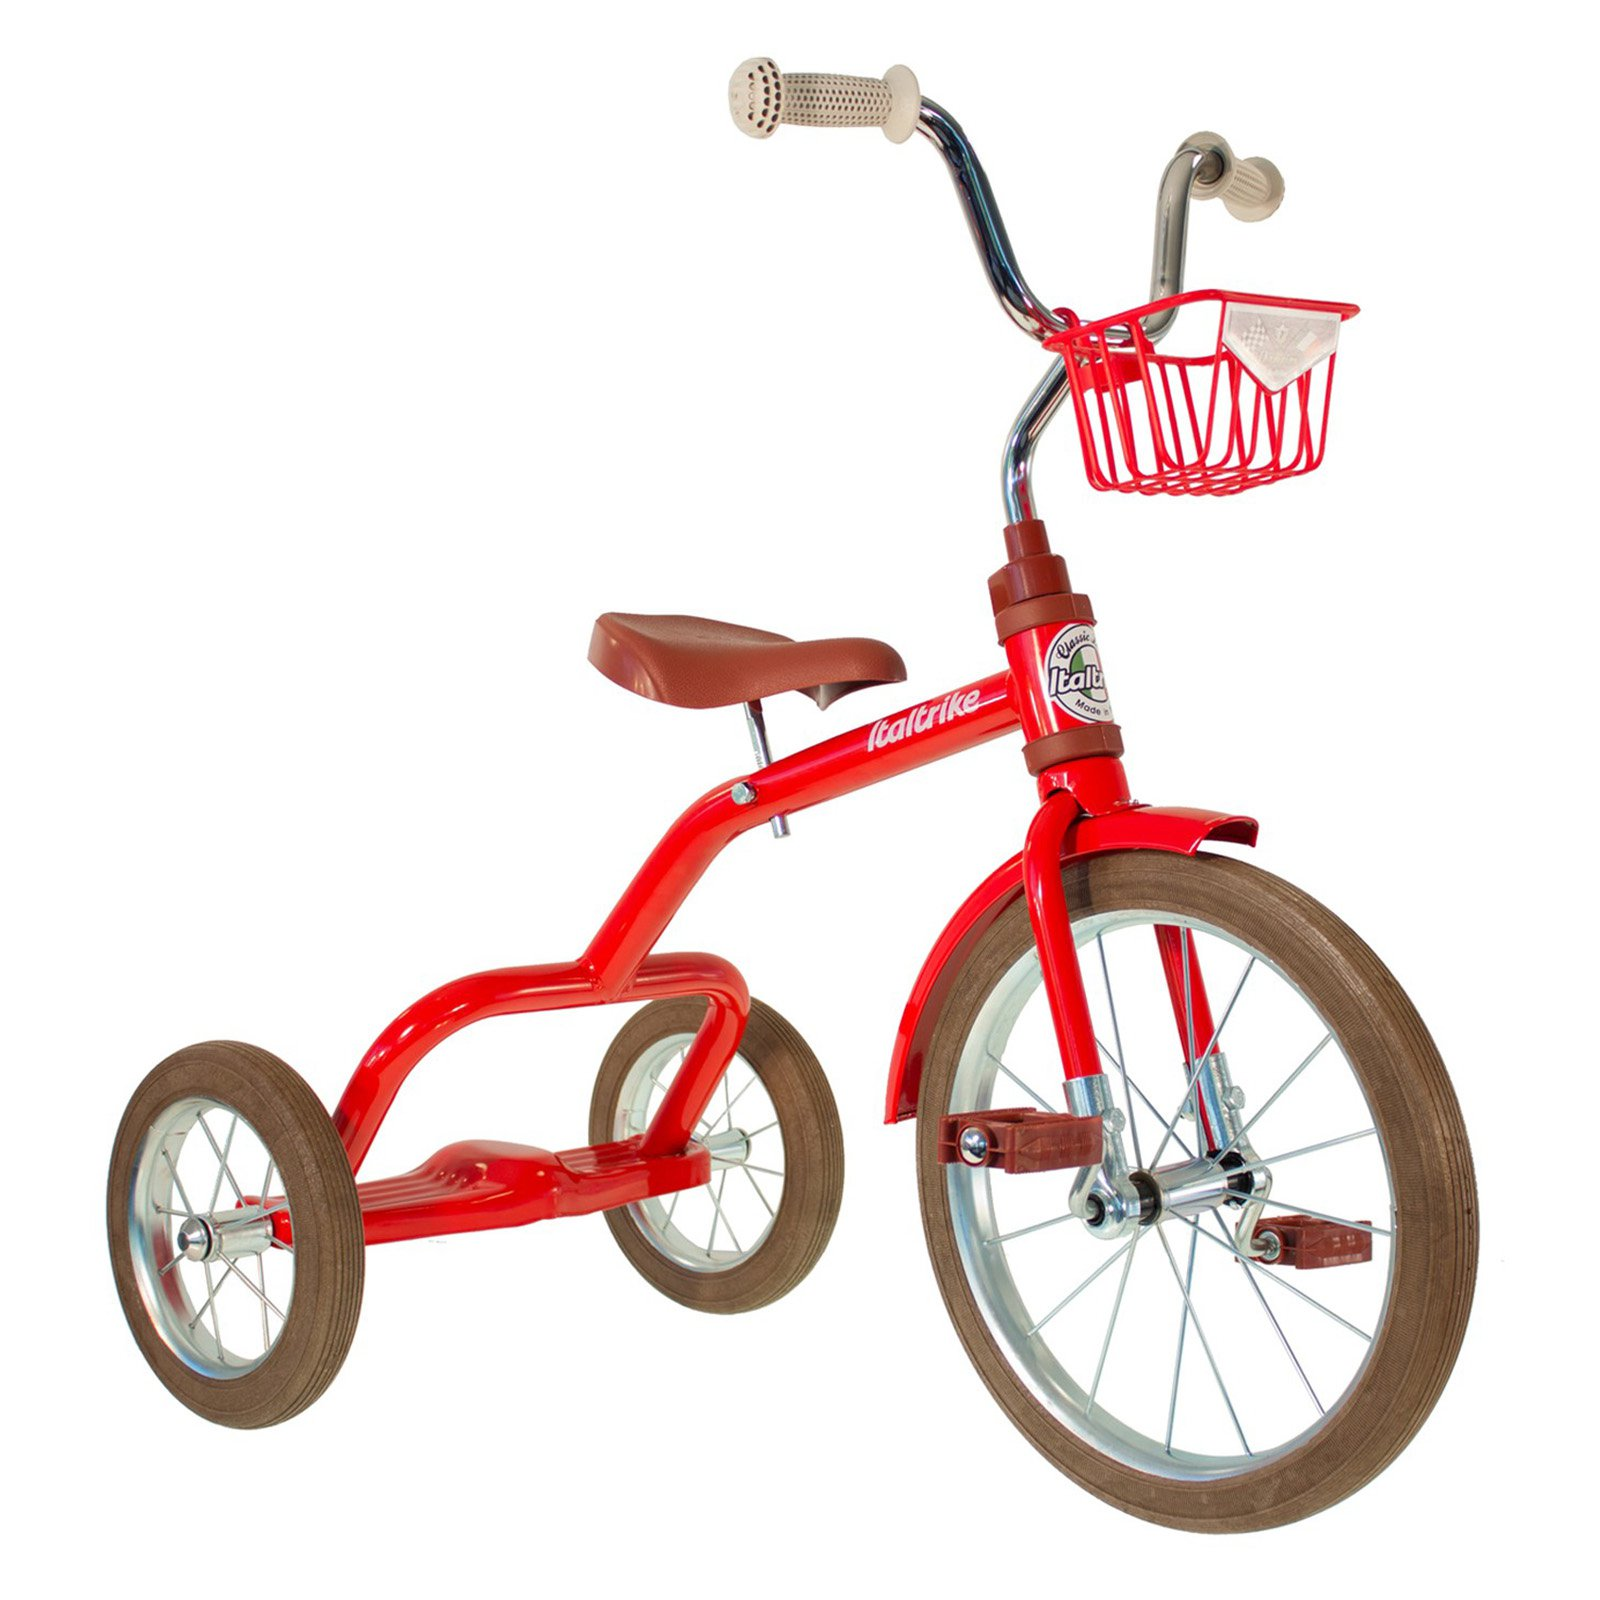 Italtrike 16 in. Spoke Champion Tricycle